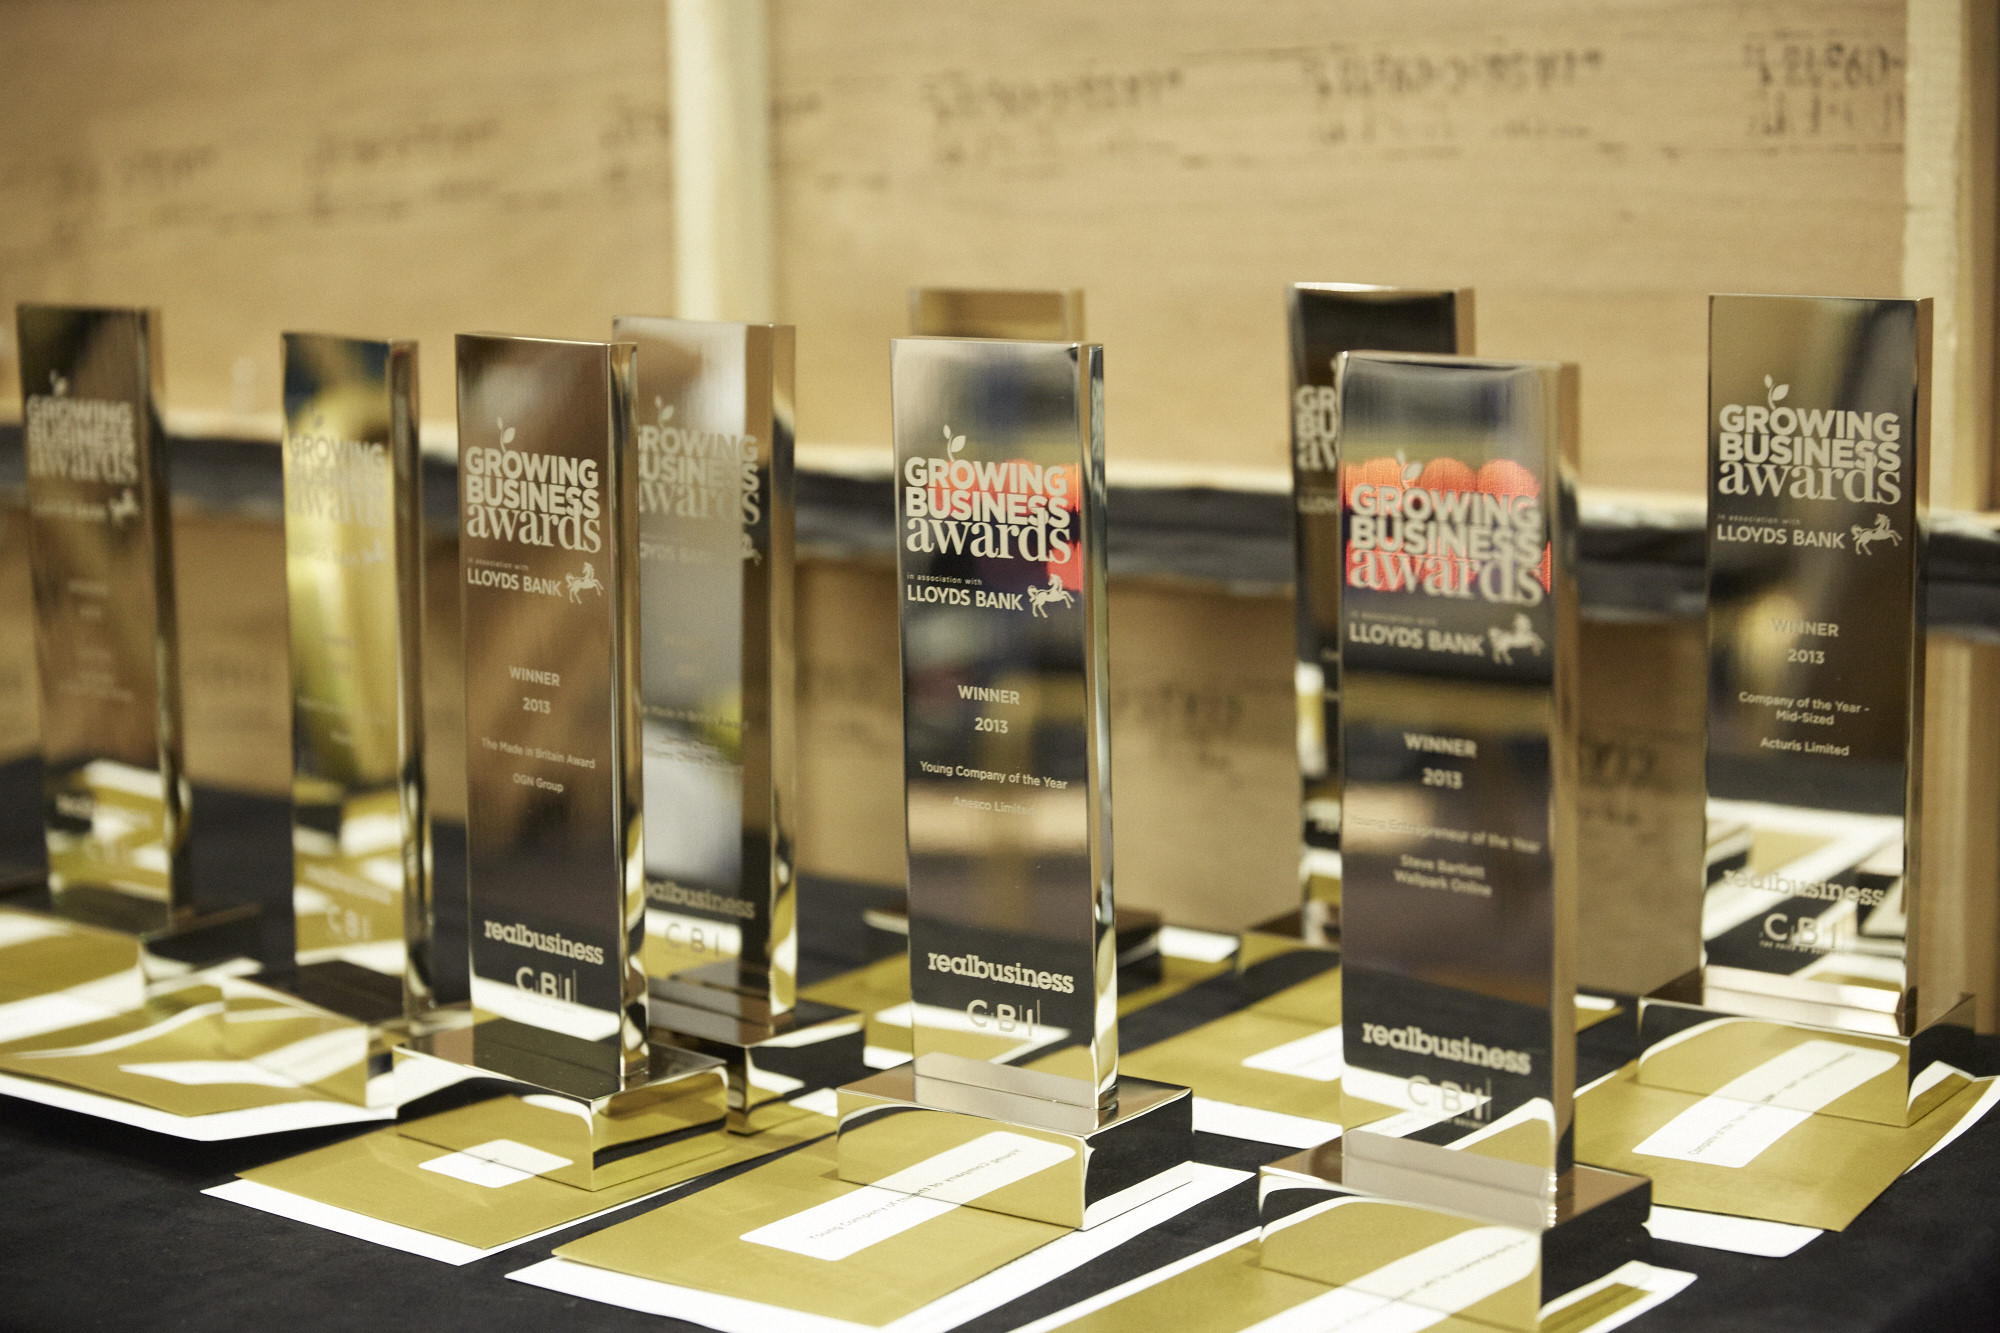 Growing Business Awards 2014 shortlists announced